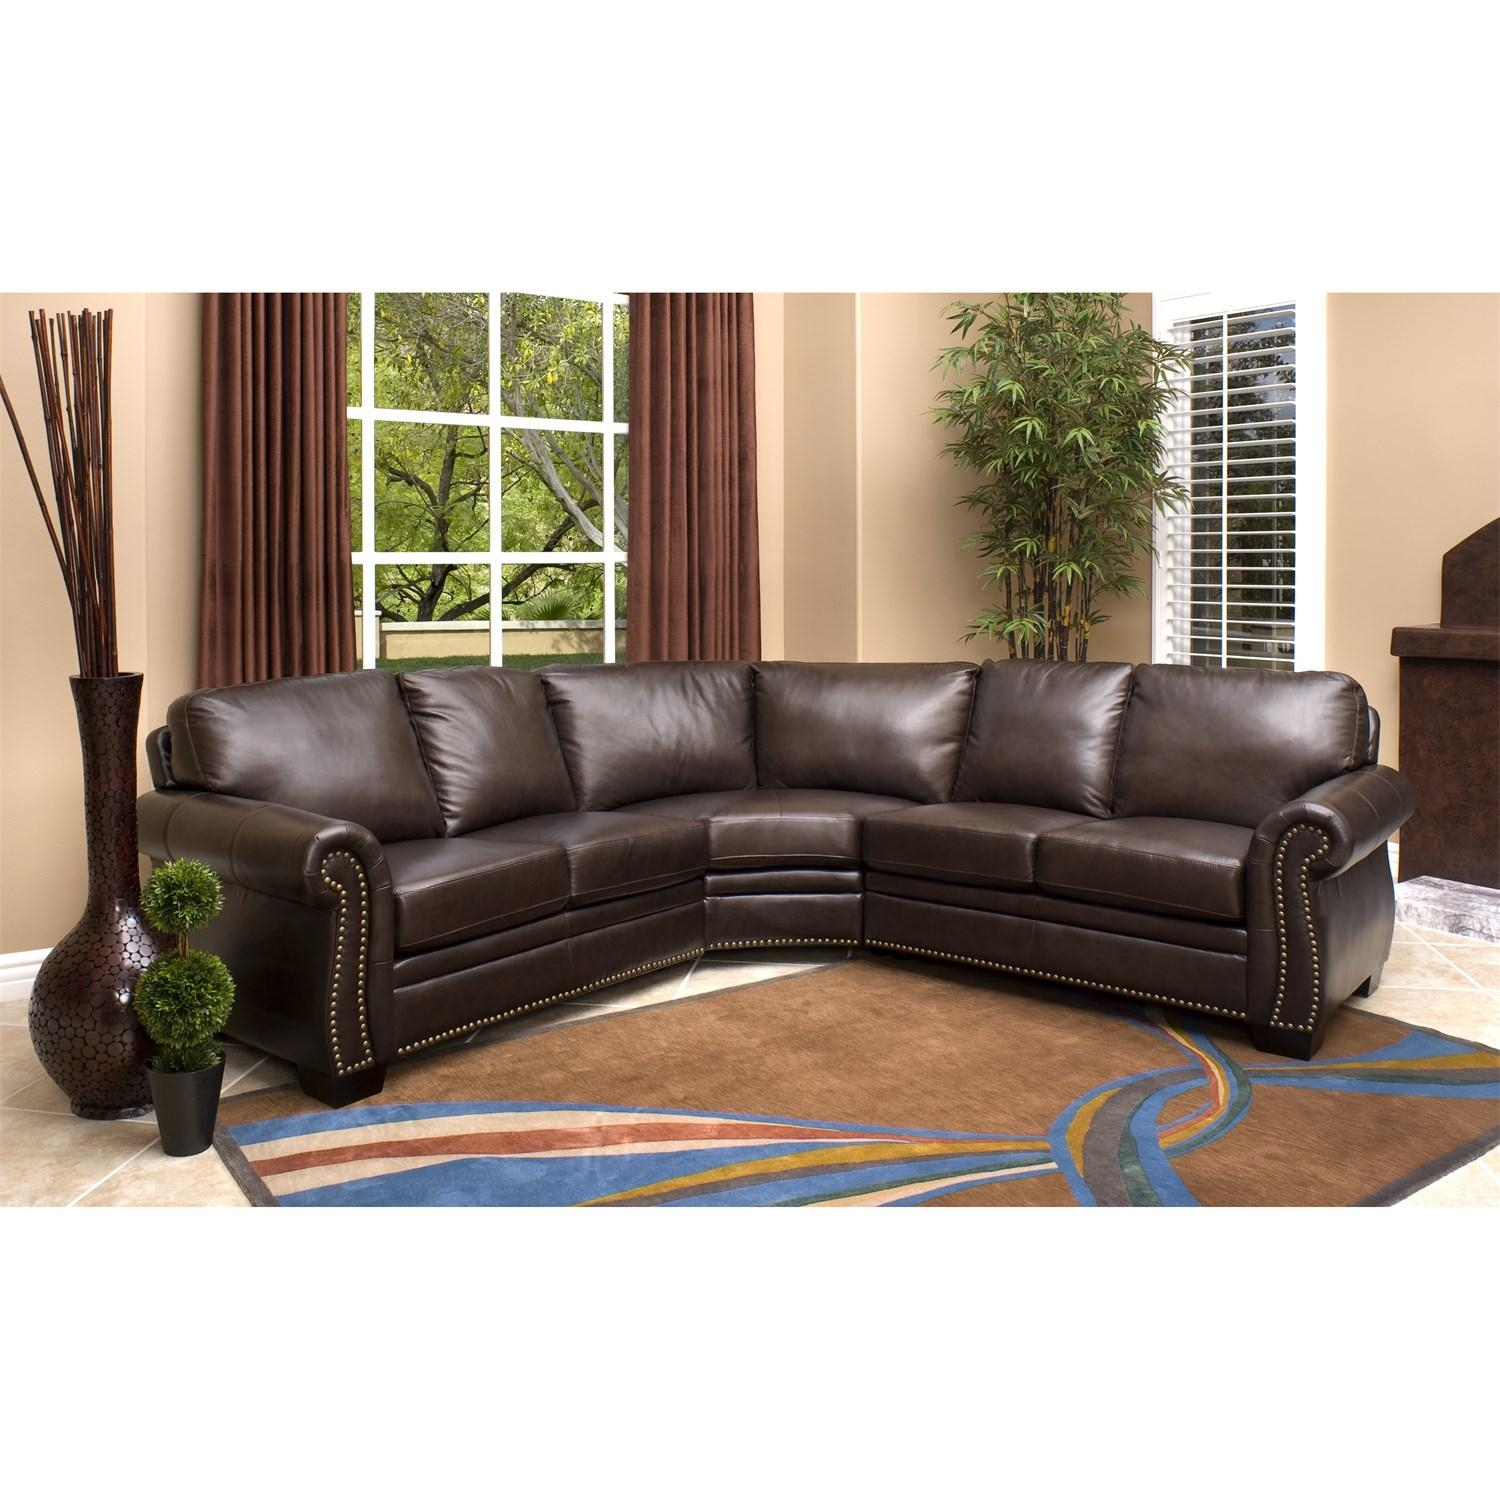 Abbyson Living Ci N410 Brn Oxford Italian Leather Sectional Sofa Within Abbyson Living Sectional (View 8 of 15)